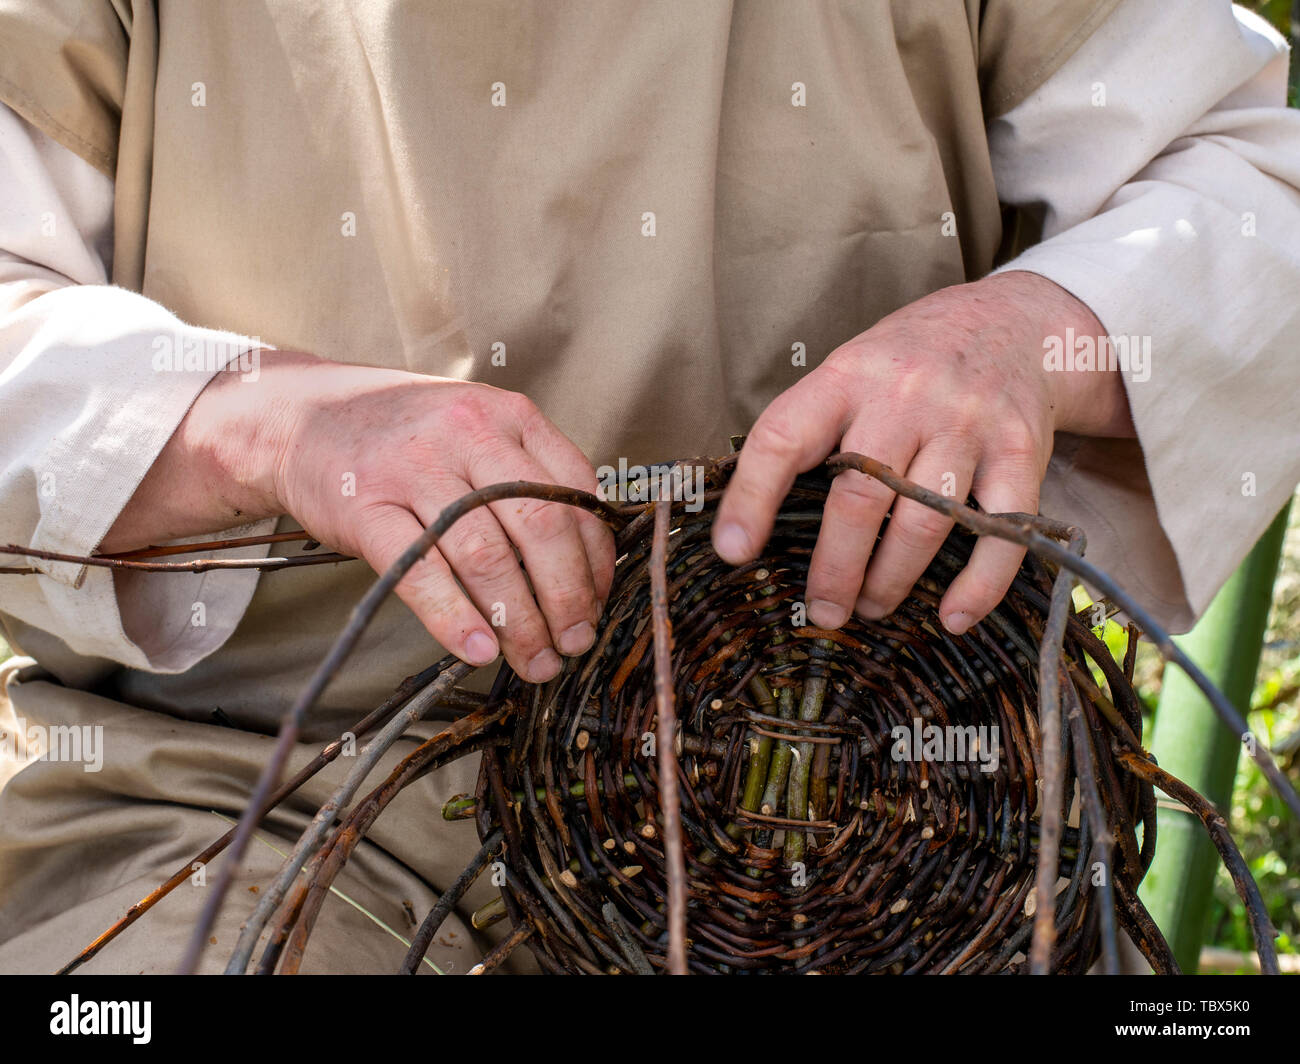 Basket weaver detail. Demonstration of ancient techniques, crafts. - Stock Image